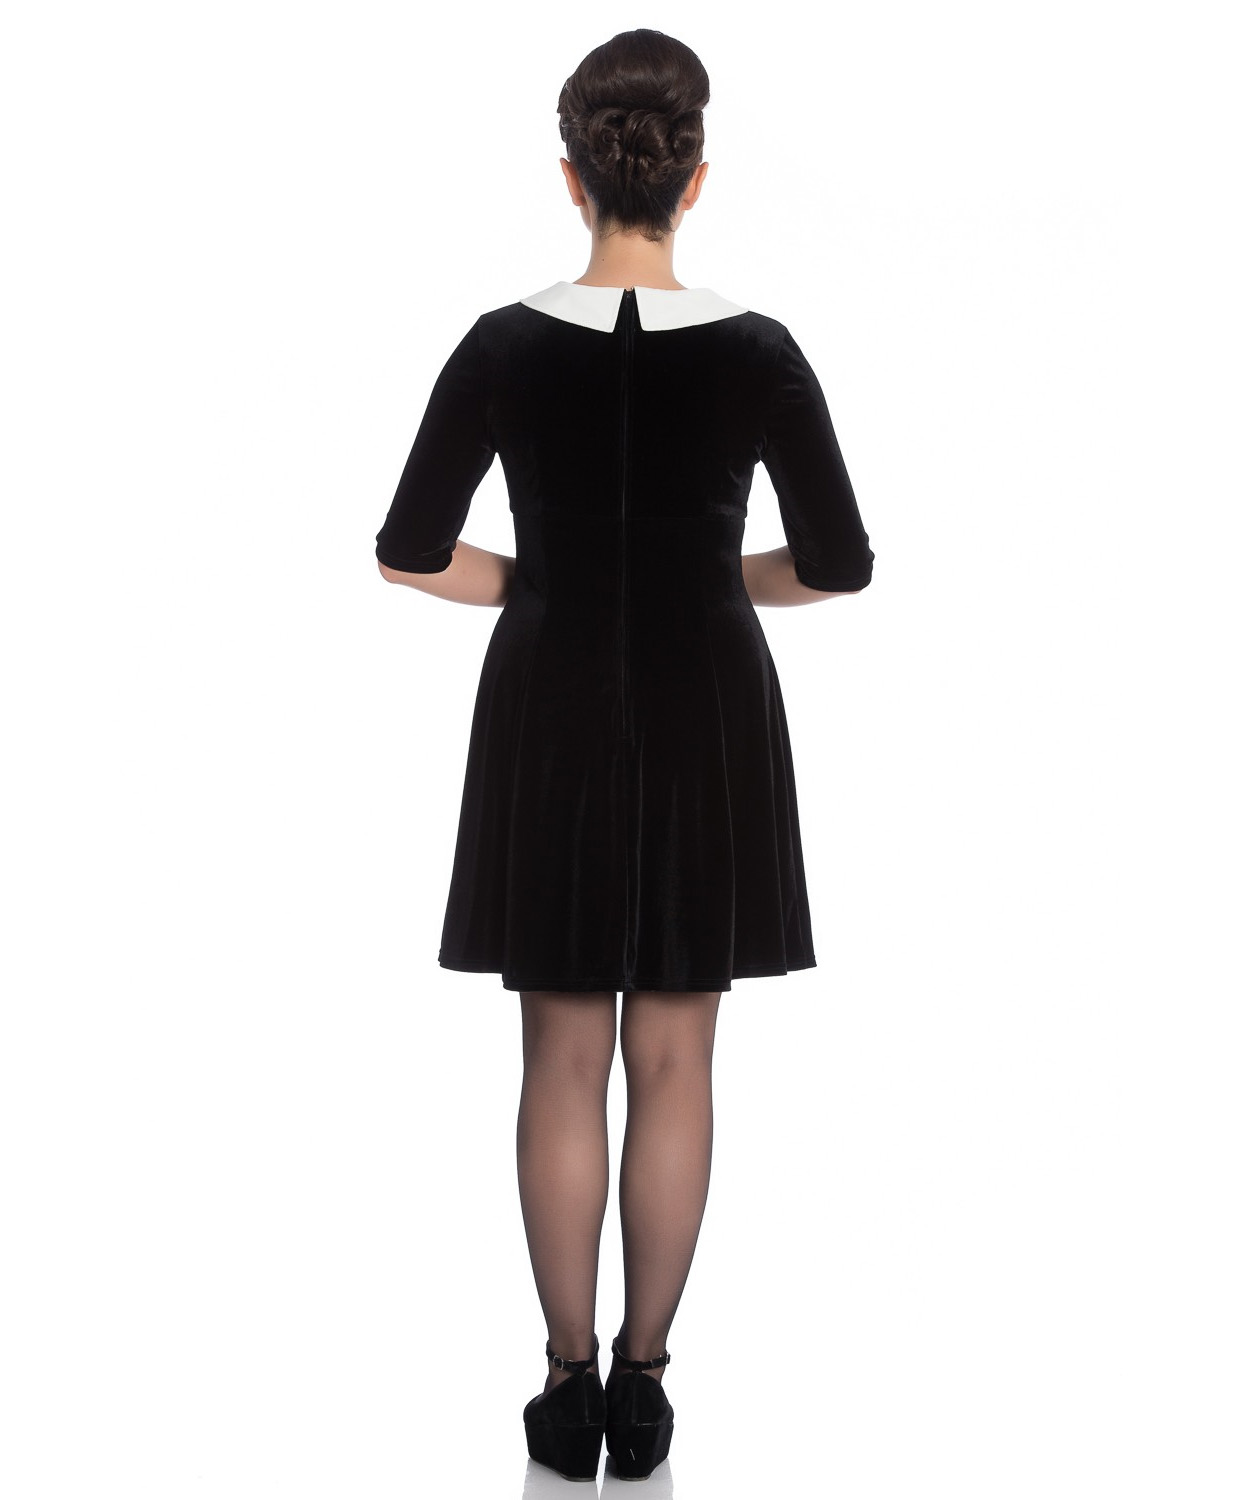 Hell-Bunny-Mini-Skater-Dress-Festive-Christmas-SNOWY-Black-Snowflakes-All-Sizes thumbnail 5